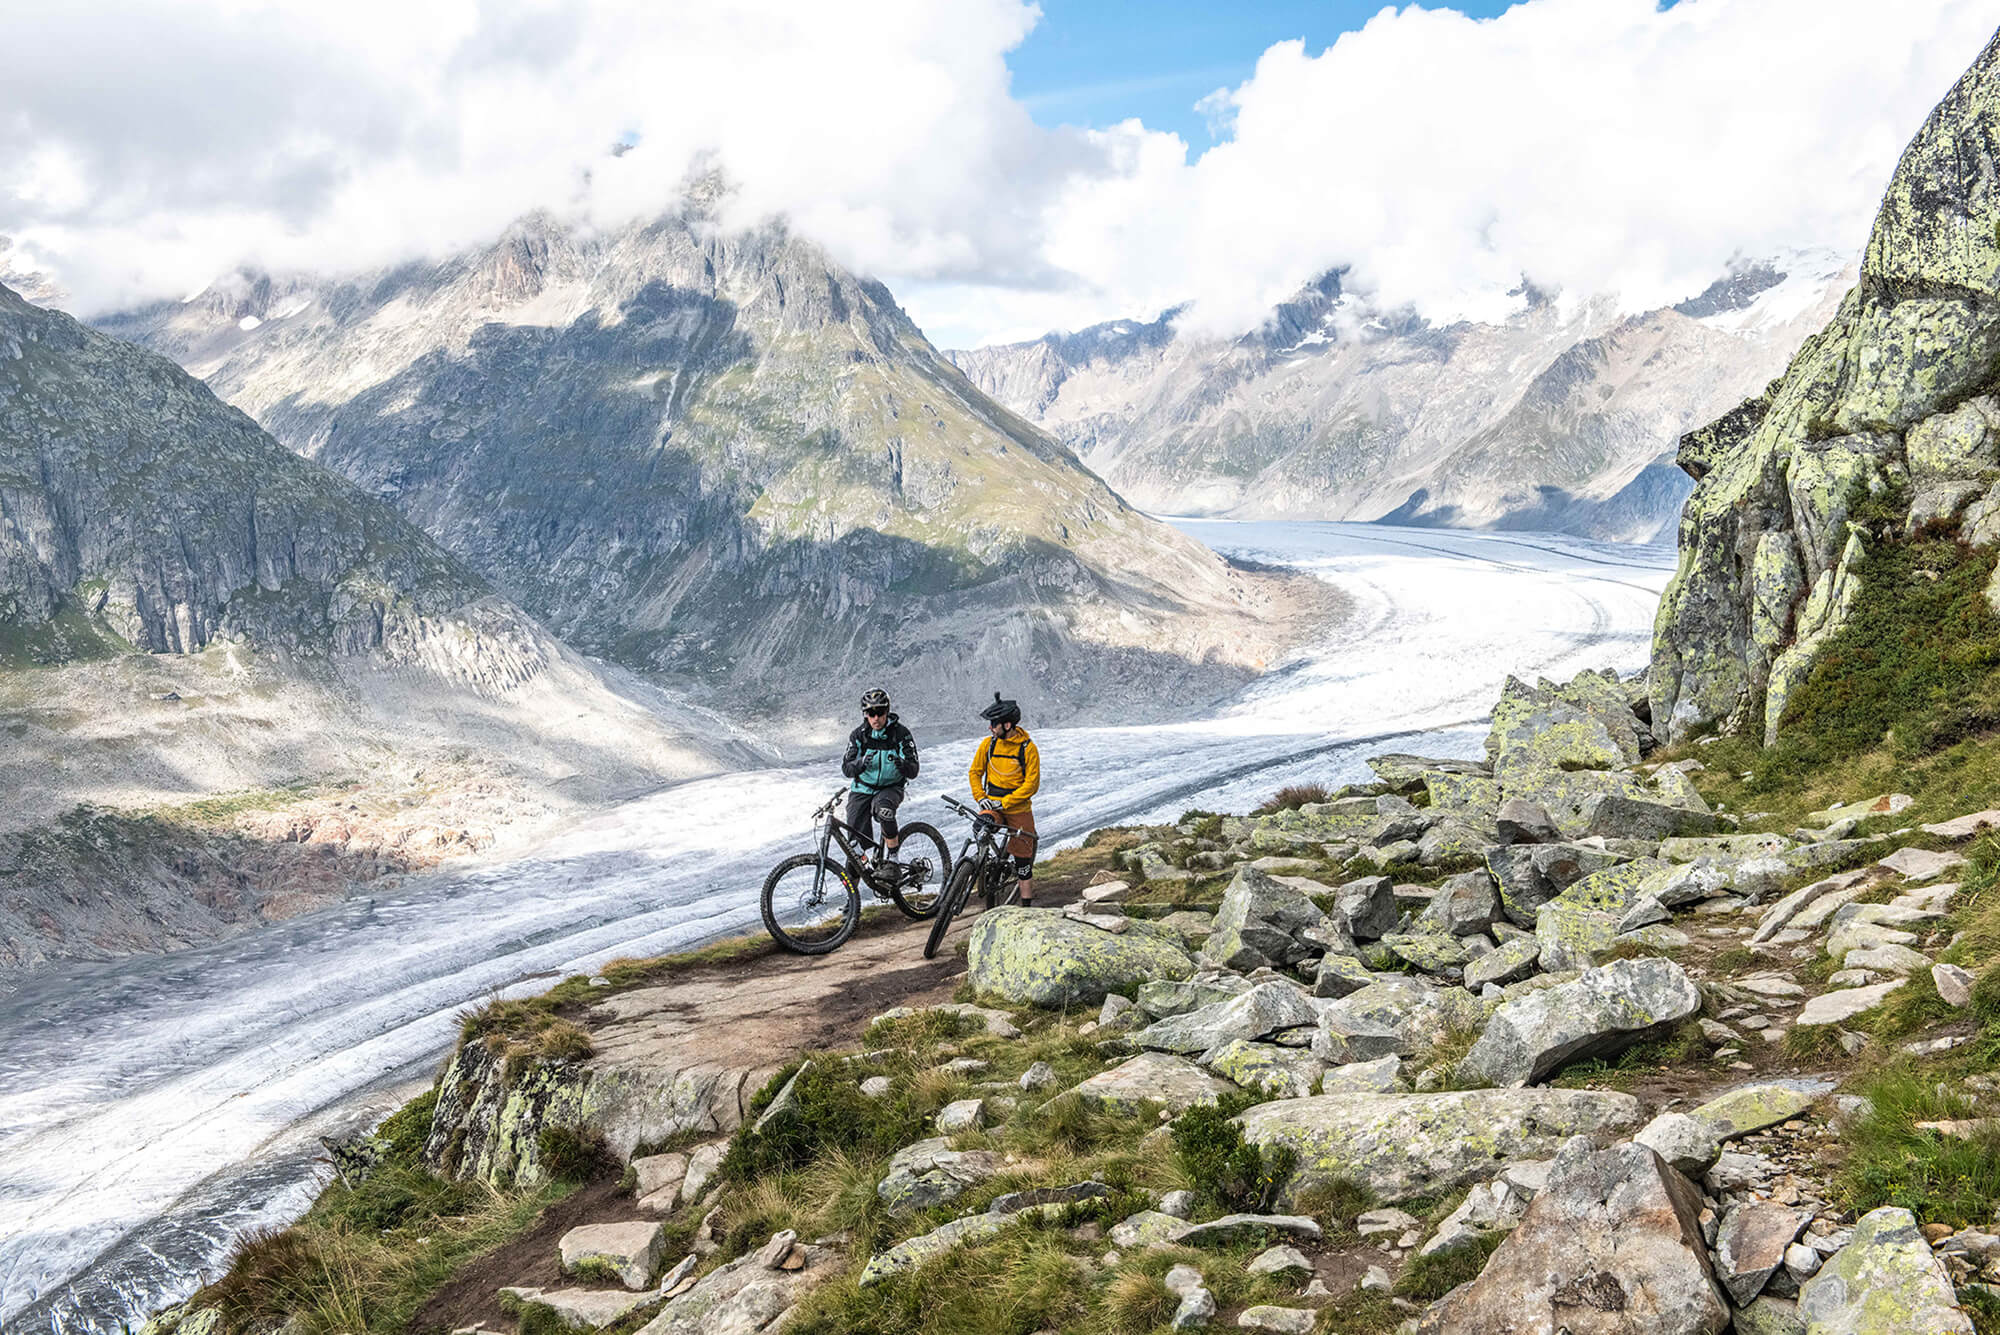 Stoneman Glaciara Mountain Bike Tour in Aletsch Arena